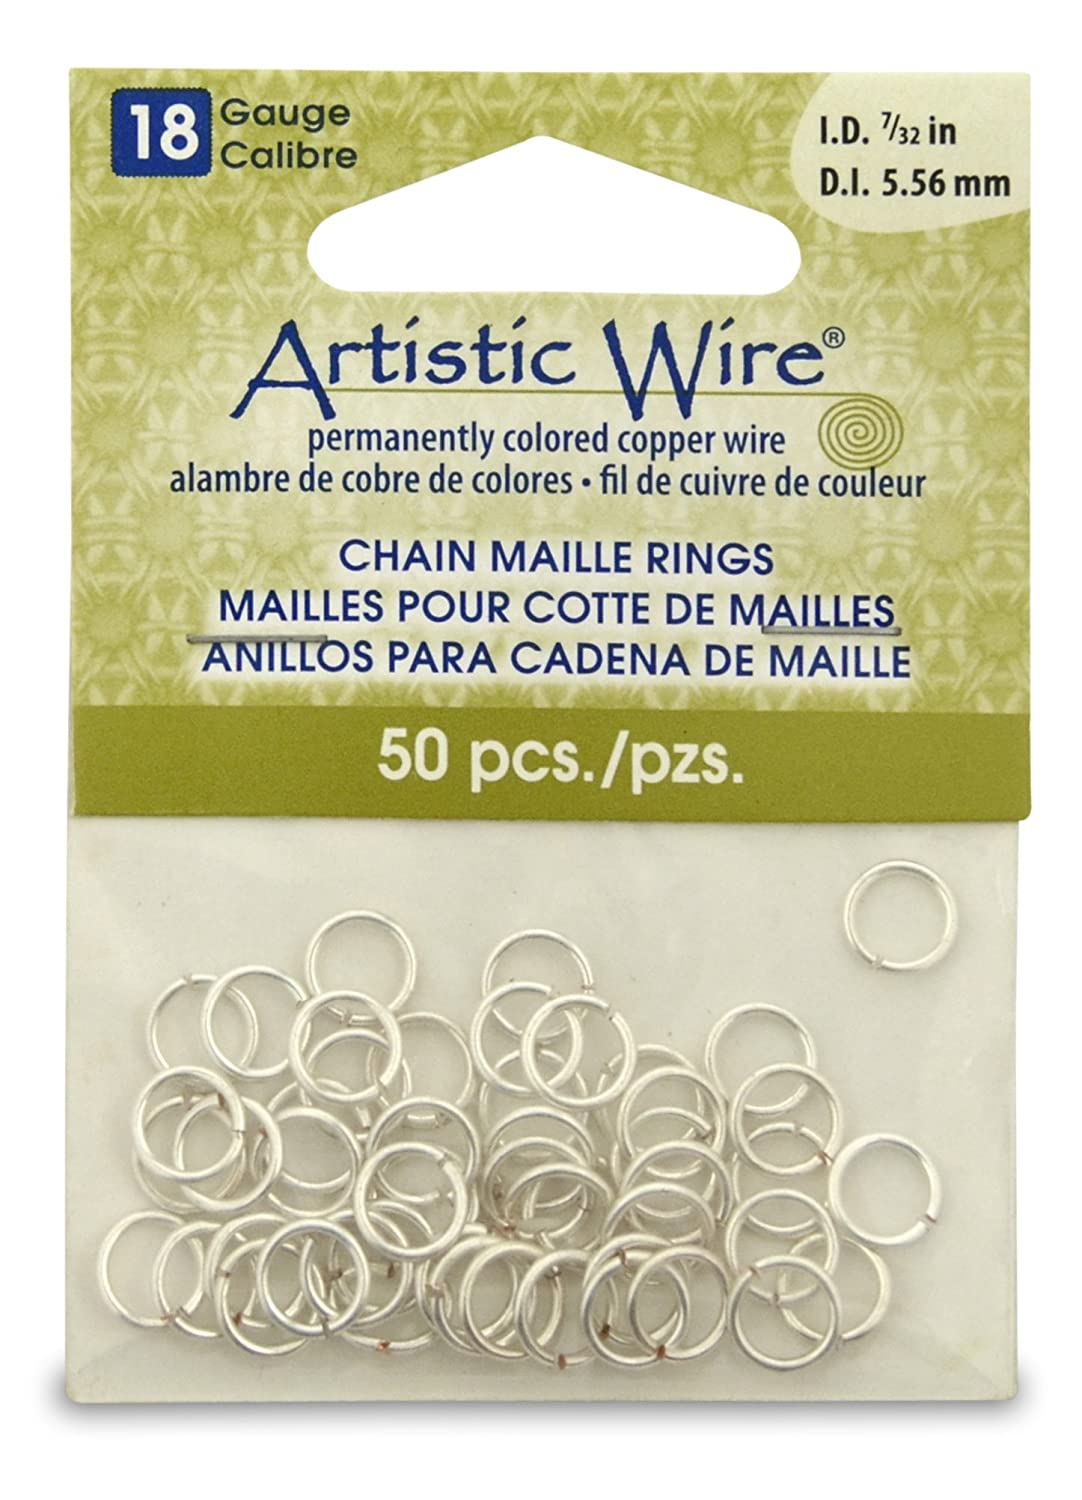 Artistic Wire Beadalon 7/32-inch 50 Piece 18-Gauge Non-Tarnish Chain Maille Rings, Silver A314-18S-10-09